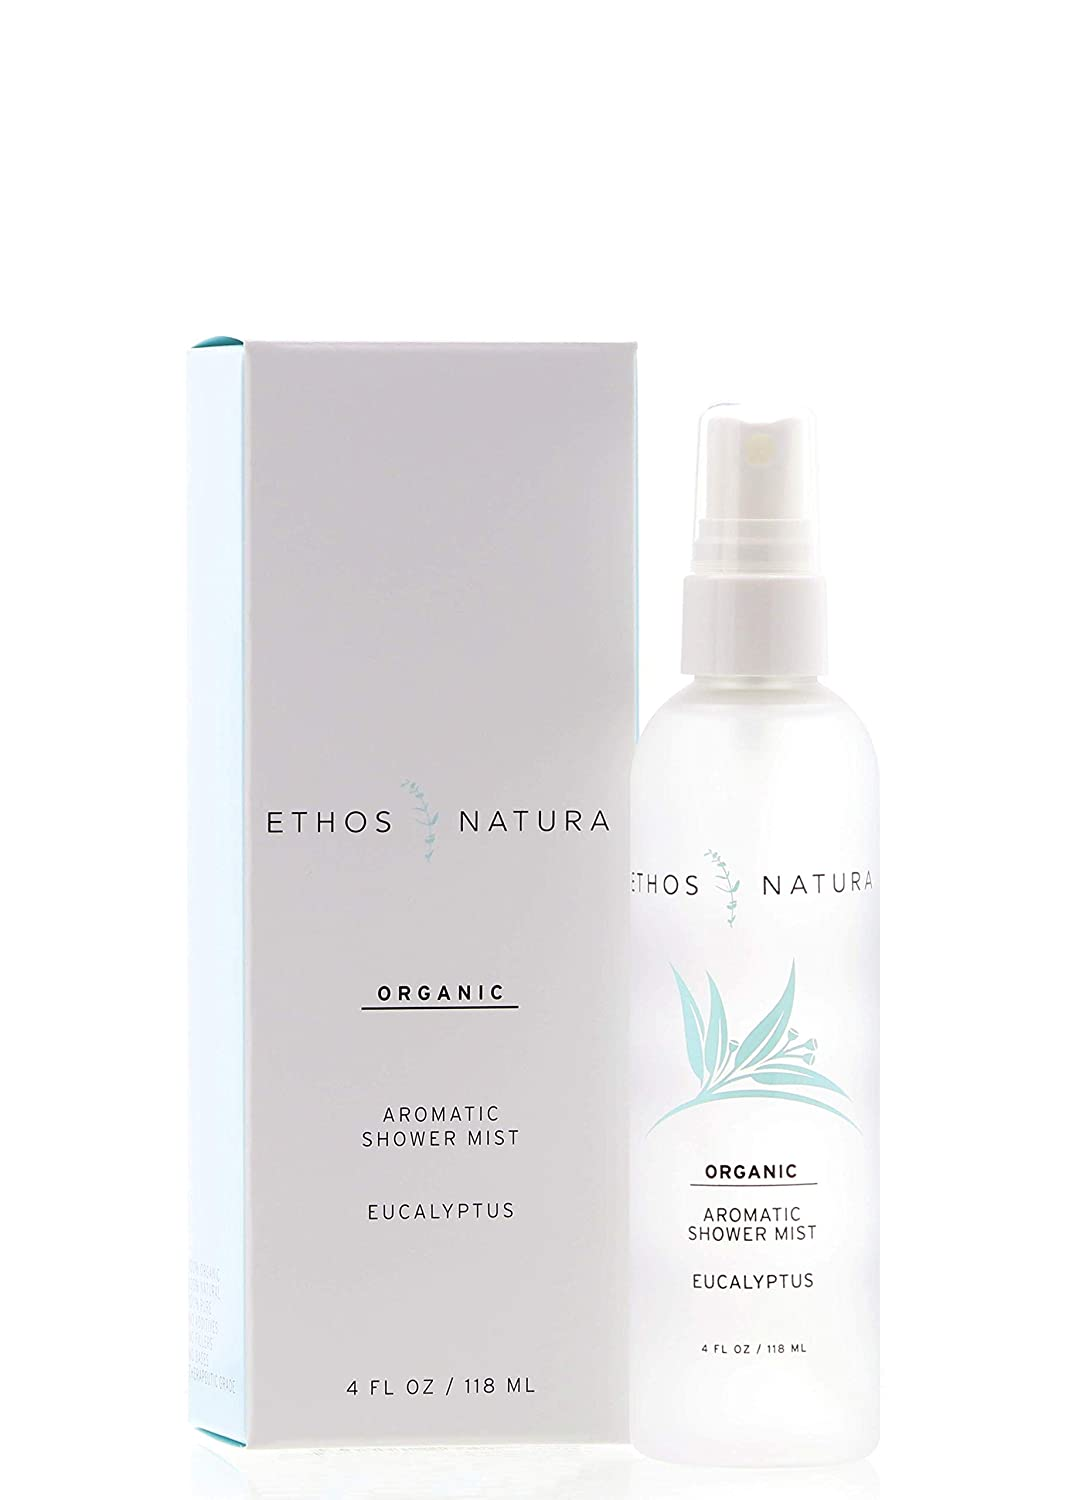 Ethos Natura Organic Eucalyptus Aromatic Shower Mist, Luxury Eucalyptus Oil Steam Shower Spray for Aromatherapy, Pure Organic Therapeutic Grade Essential Oil Spray to Create a Spa Room at Home (4 oz.)